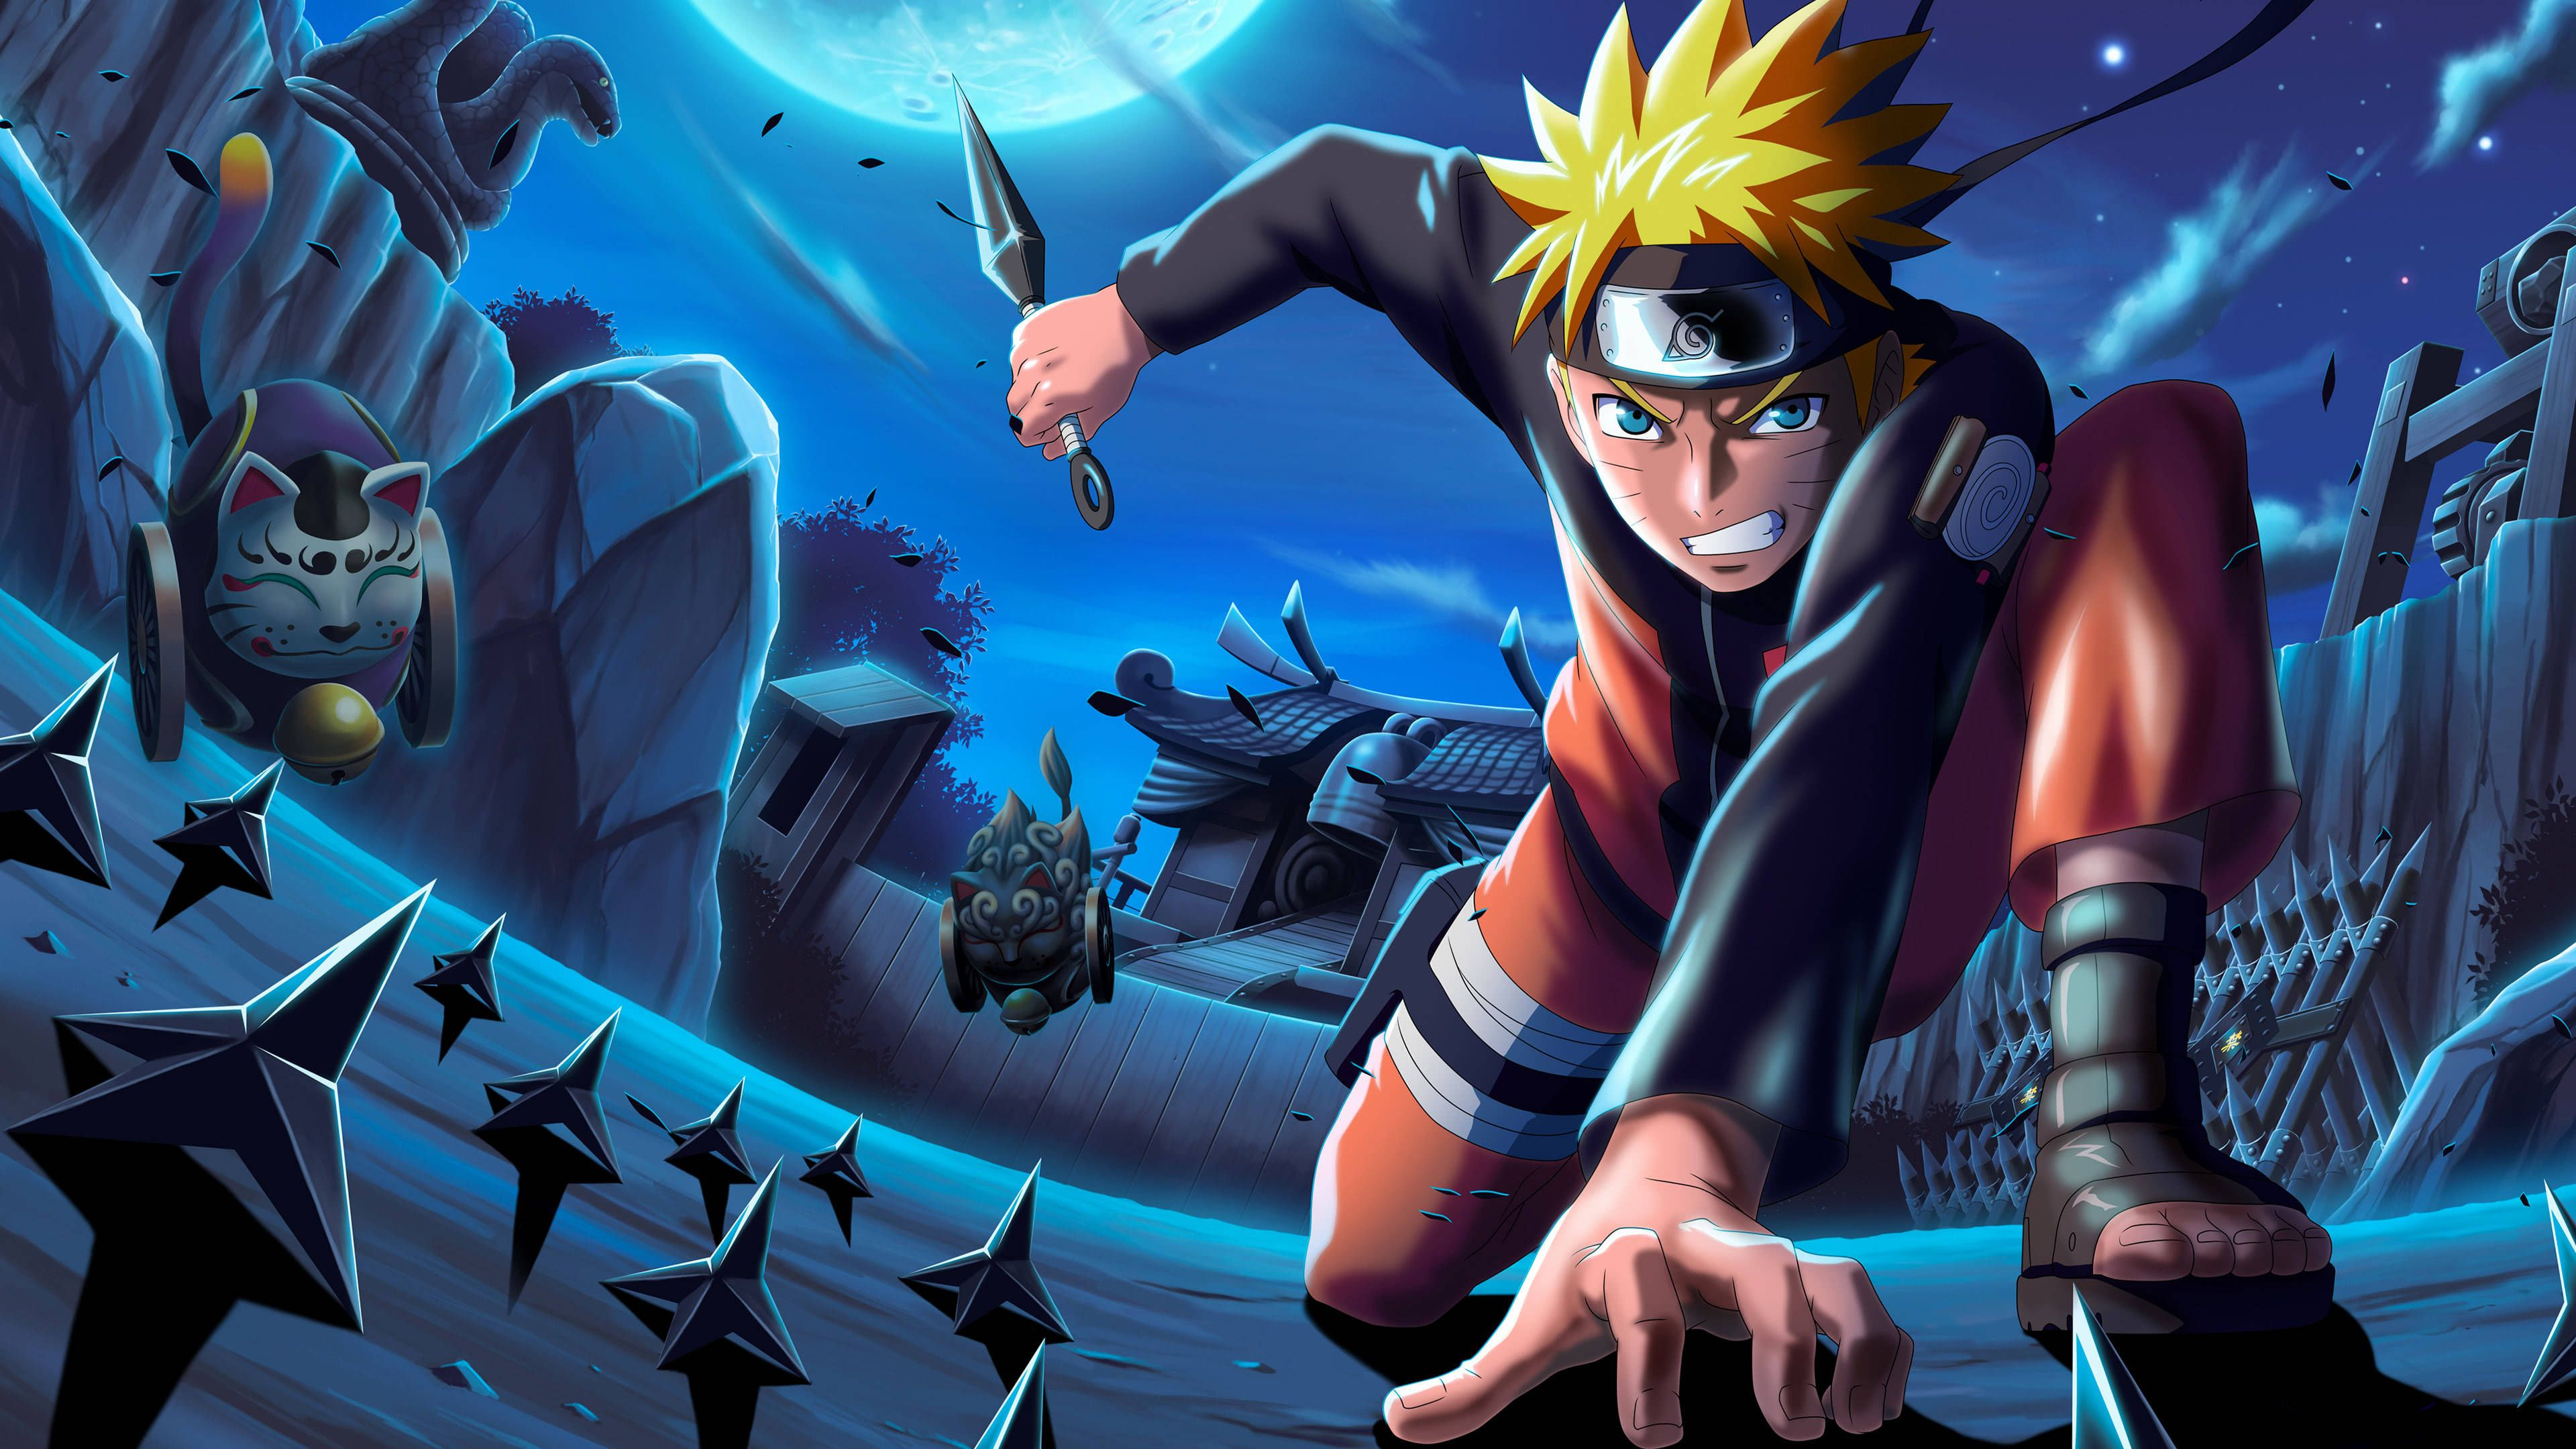 Naruto Wallpaper 4k Madara In 2020 With Images Naruto